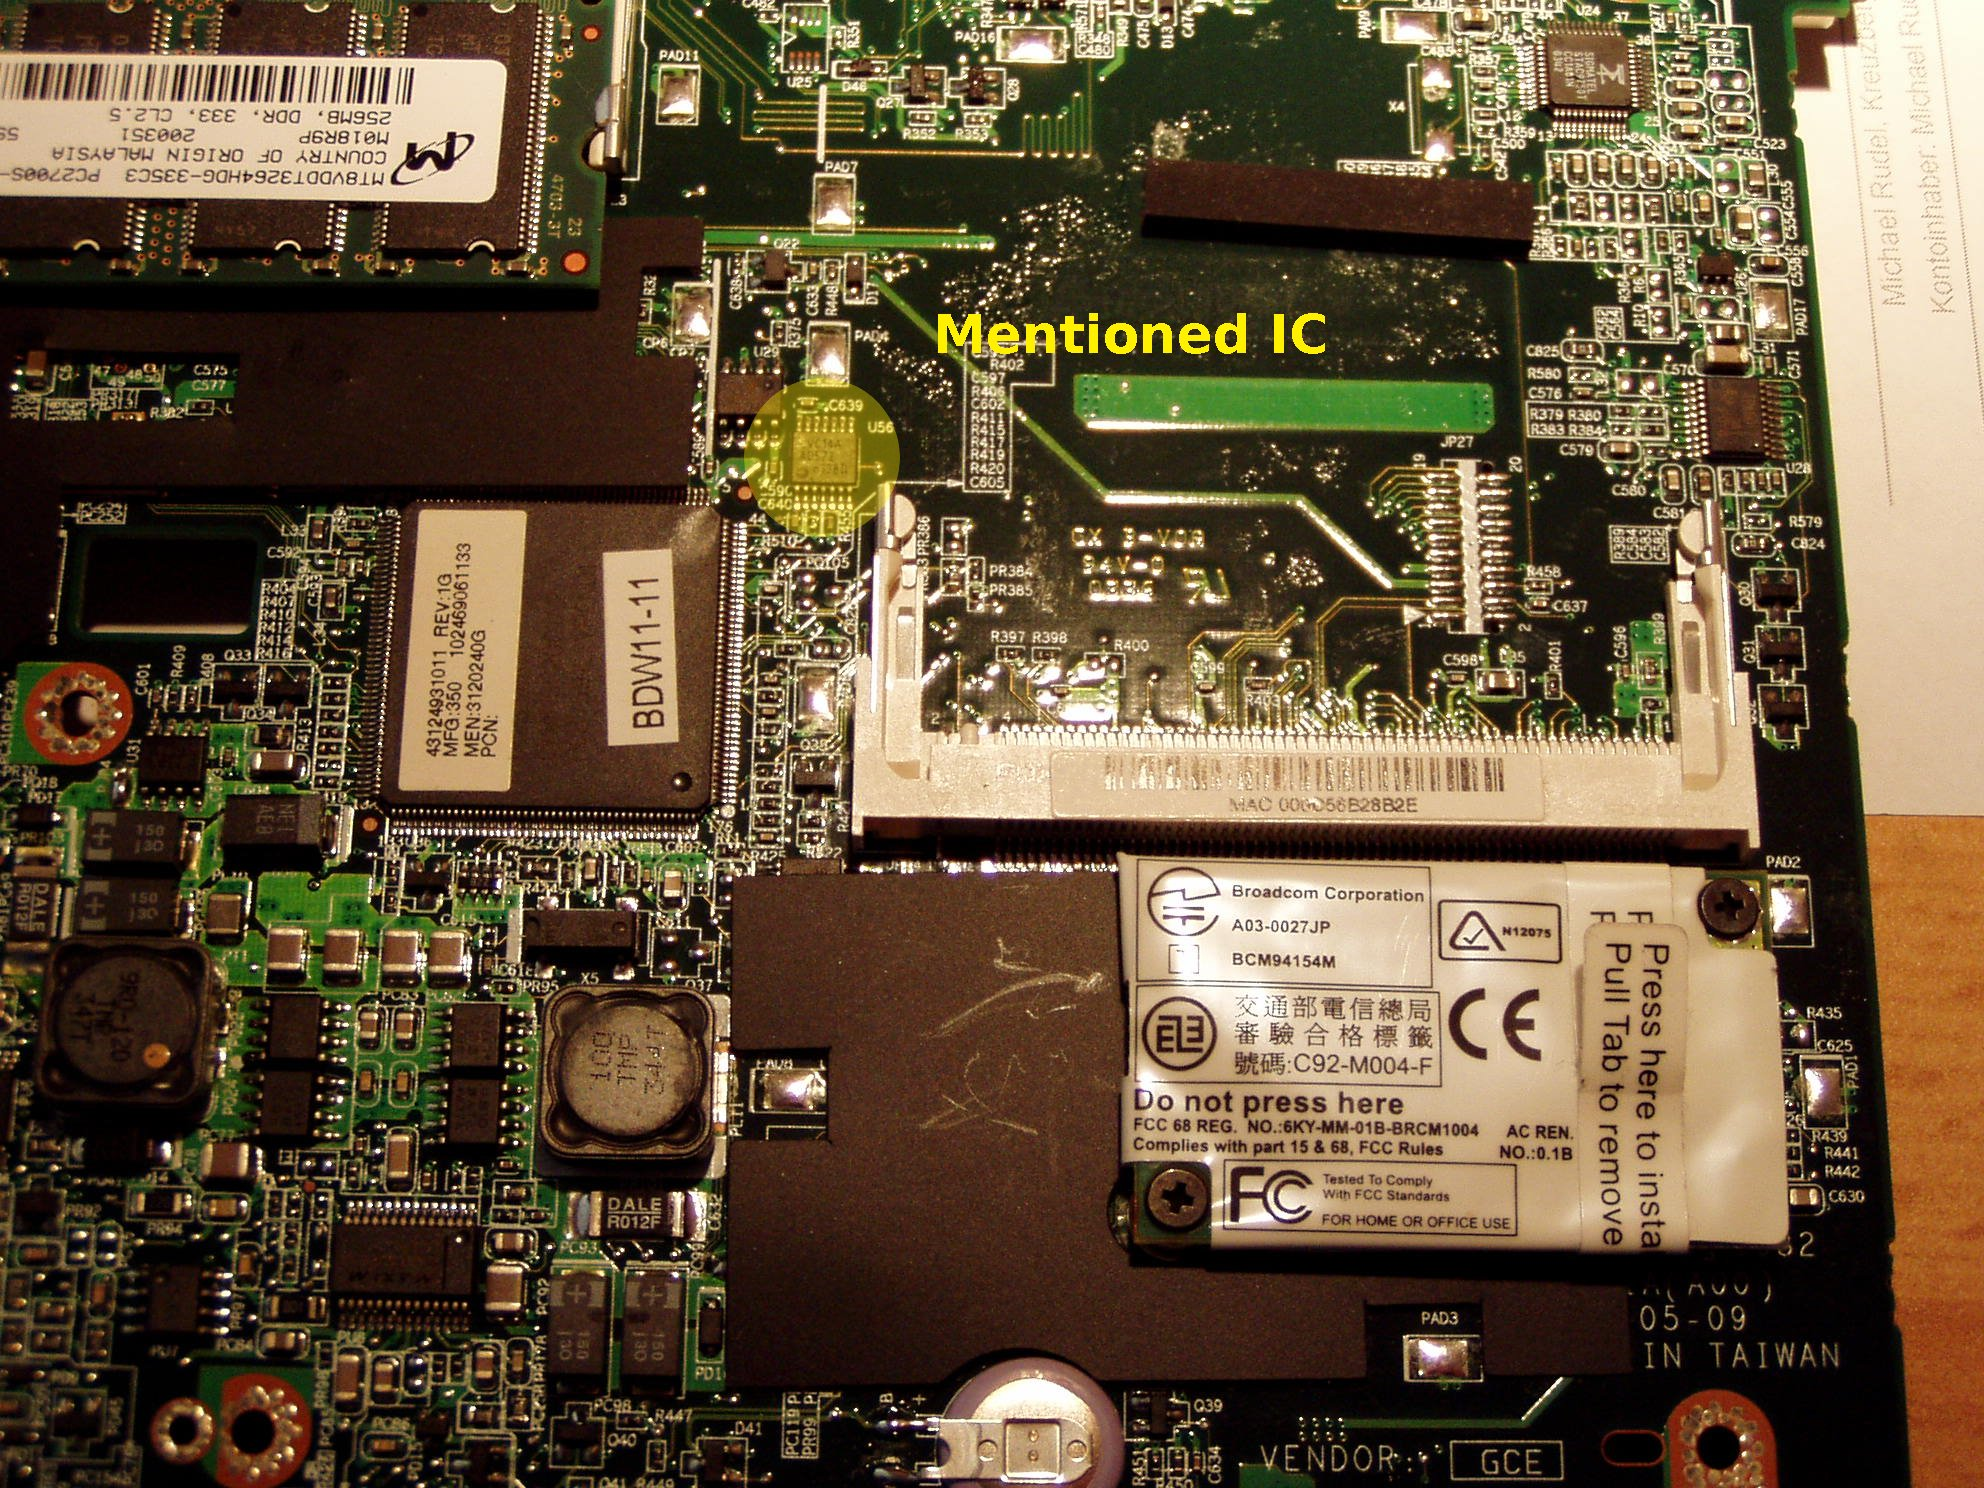 DELL INSPIRON 13 N3010 NOTEBOOK ATI MOBILITY RADEON HD 4330 DISPLAY DOWNLOAD DRIVERS